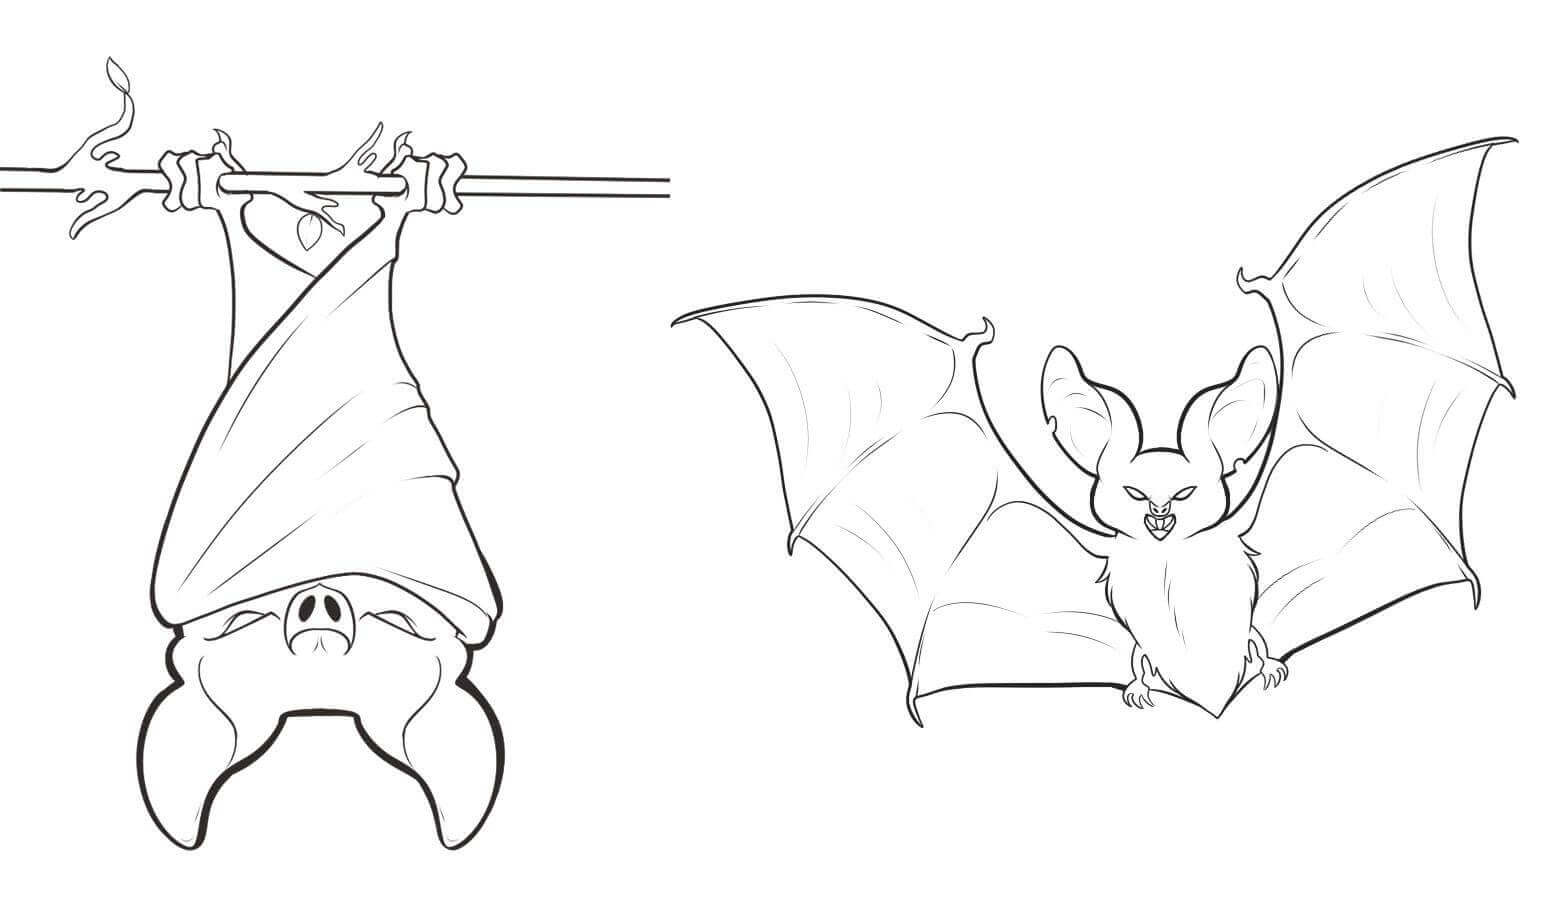 Bat Hanging Upside Down Coloring Page